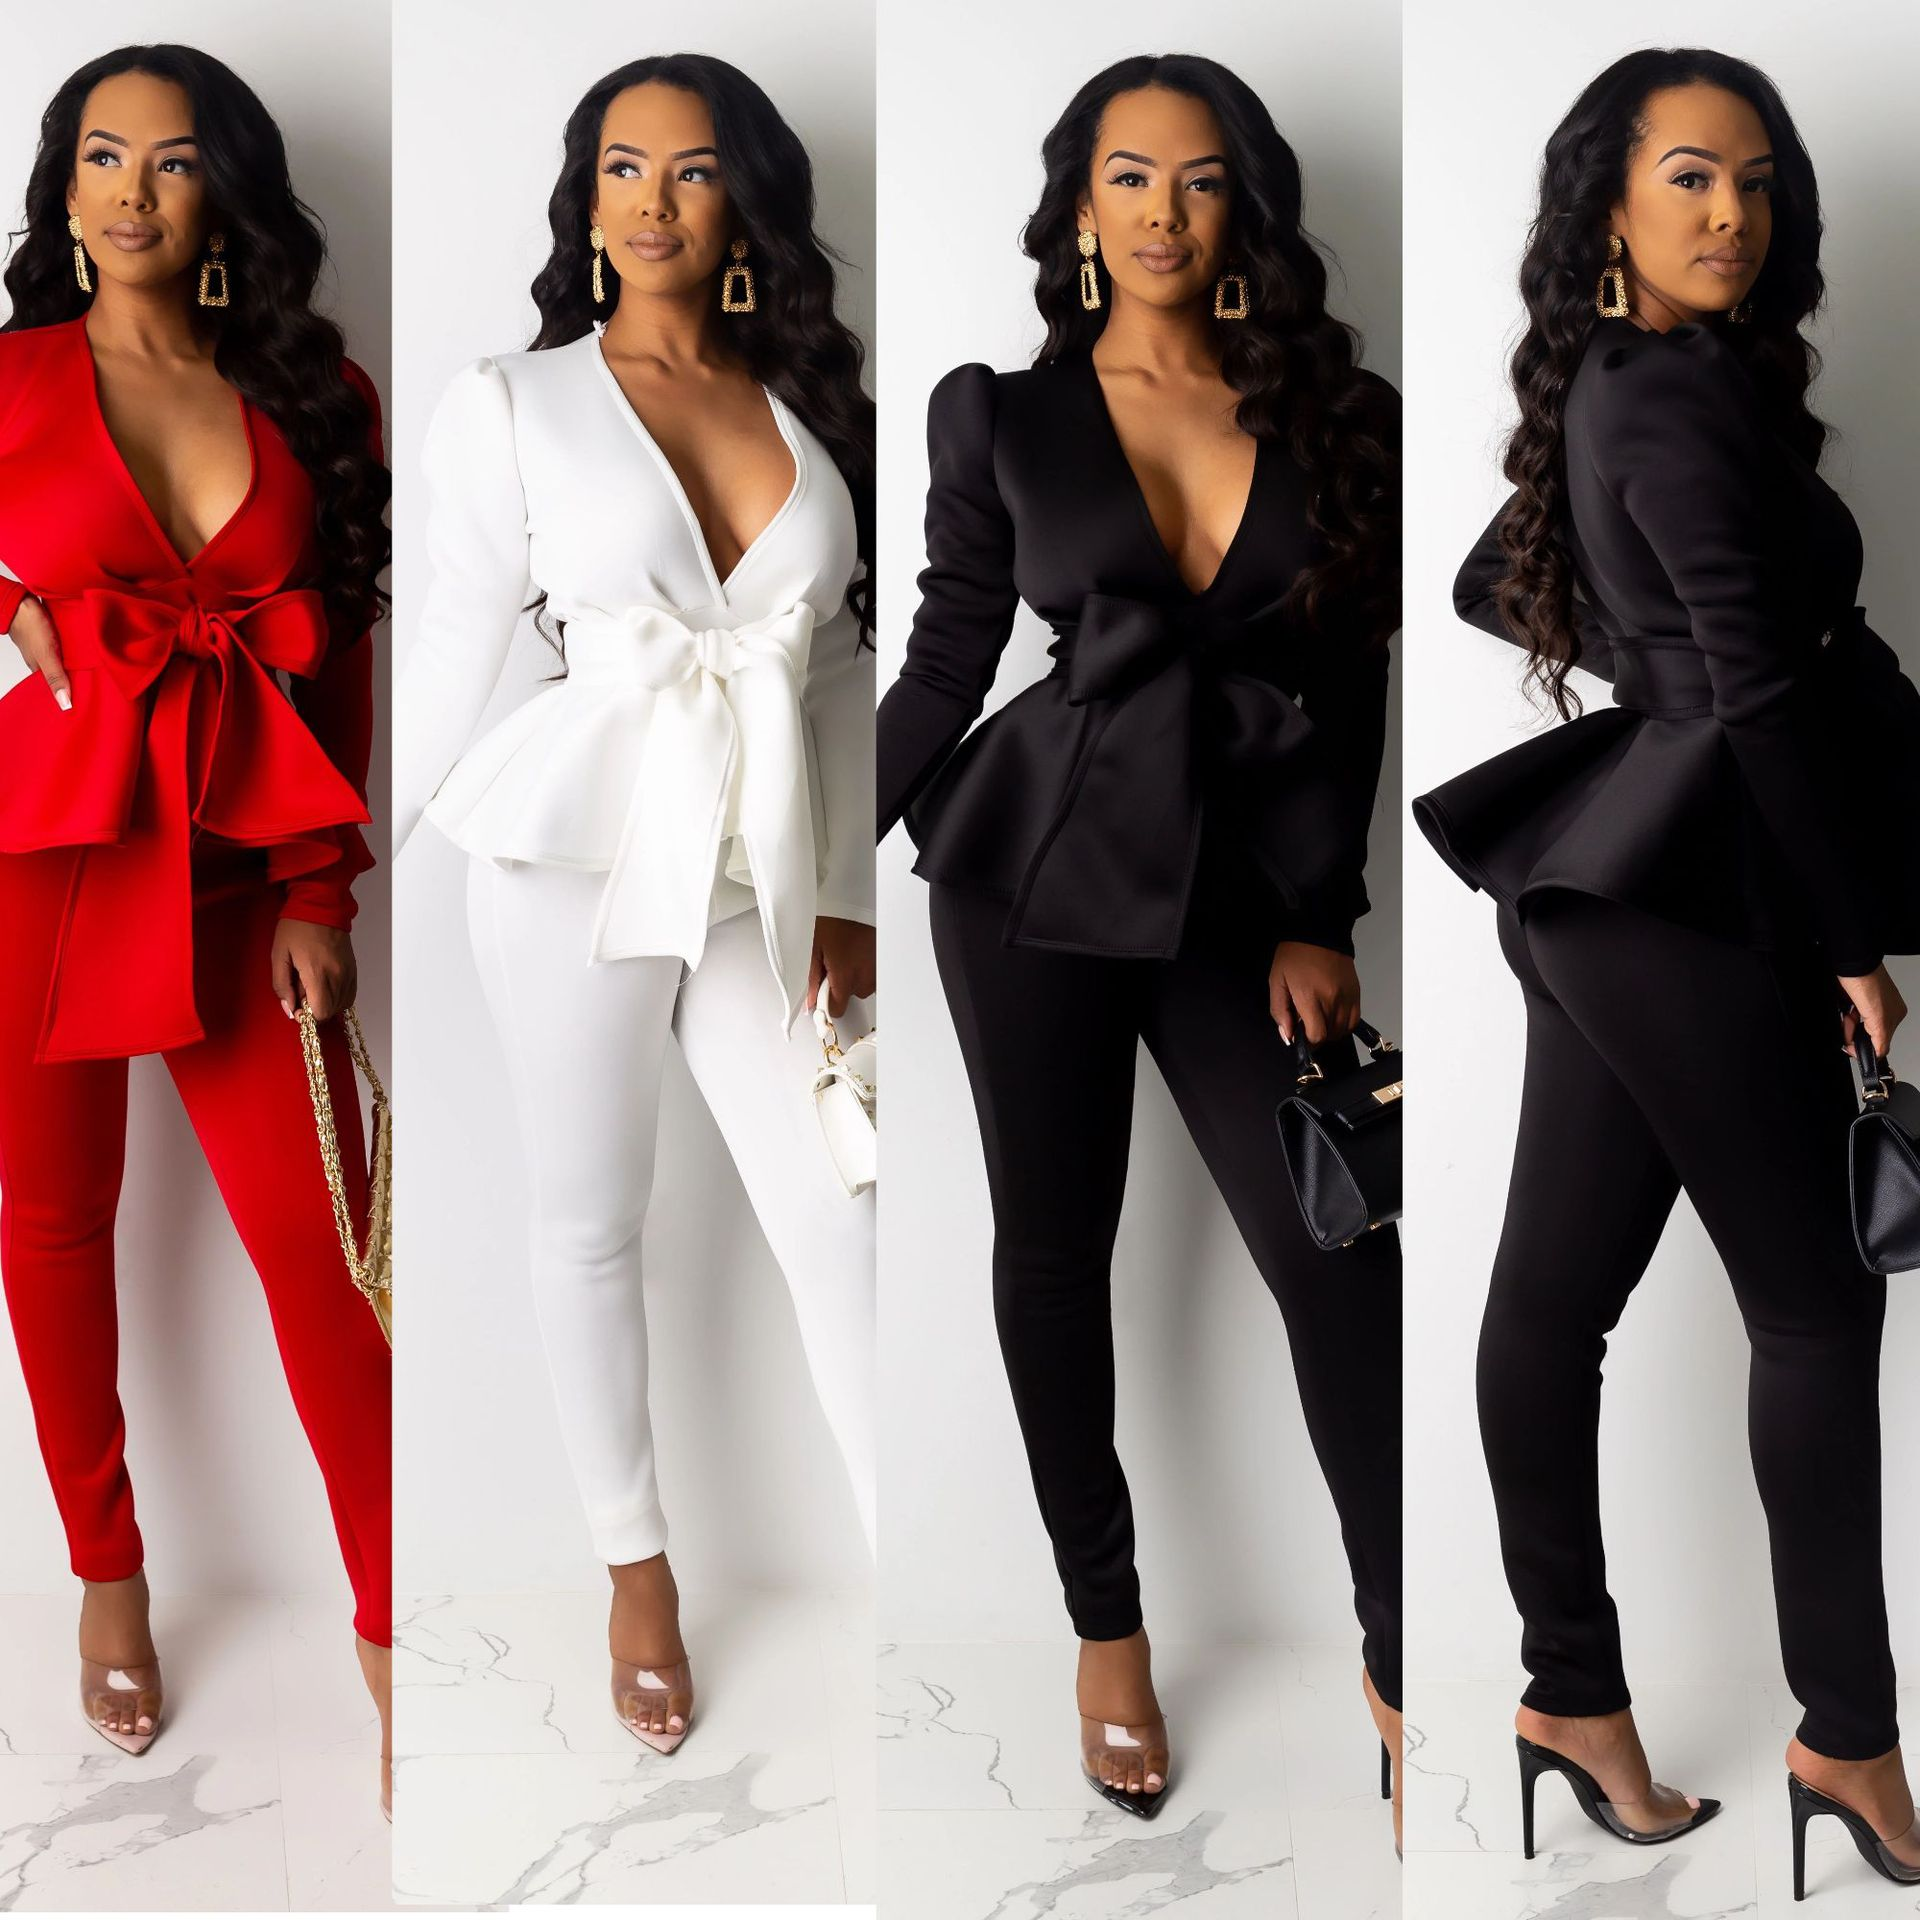 Women Winter Women's Set Tracksuit Plus Size Ruffles Bow Blazers Pants Suit 2 Two Piece Set Office Lady Business Uniform Outfits